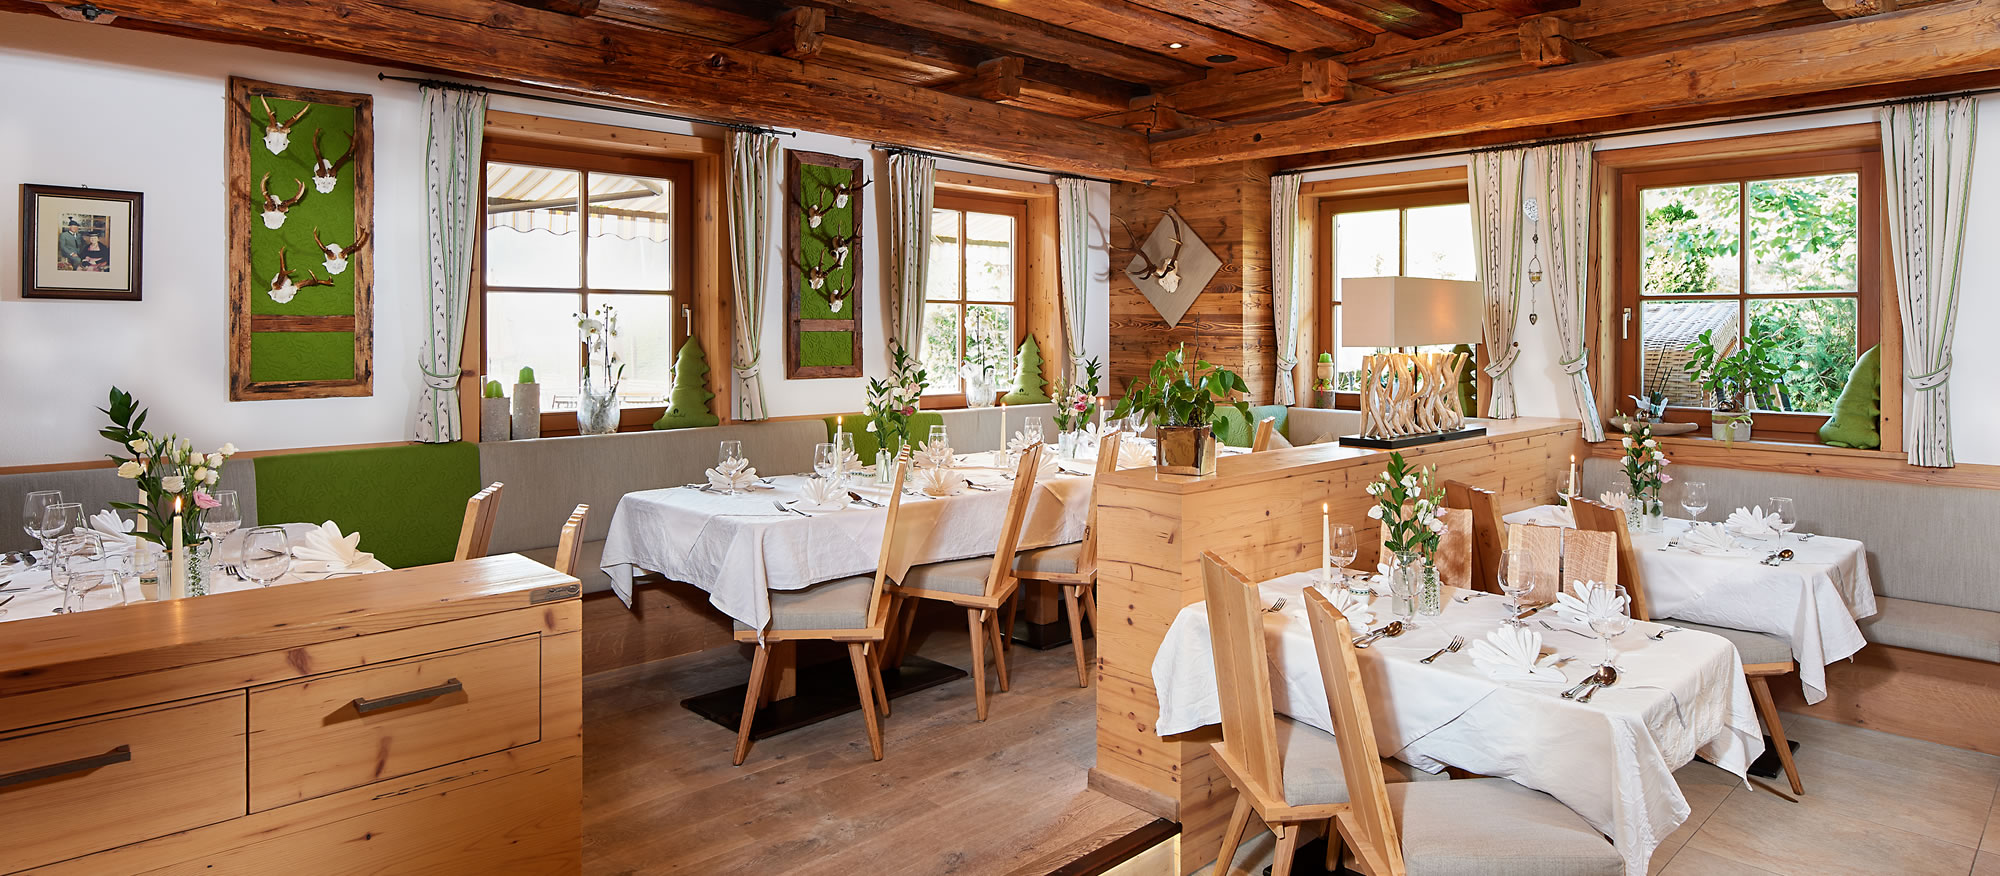 Restaurant mit Stuben in stilvoll-traditionellem Ambiente